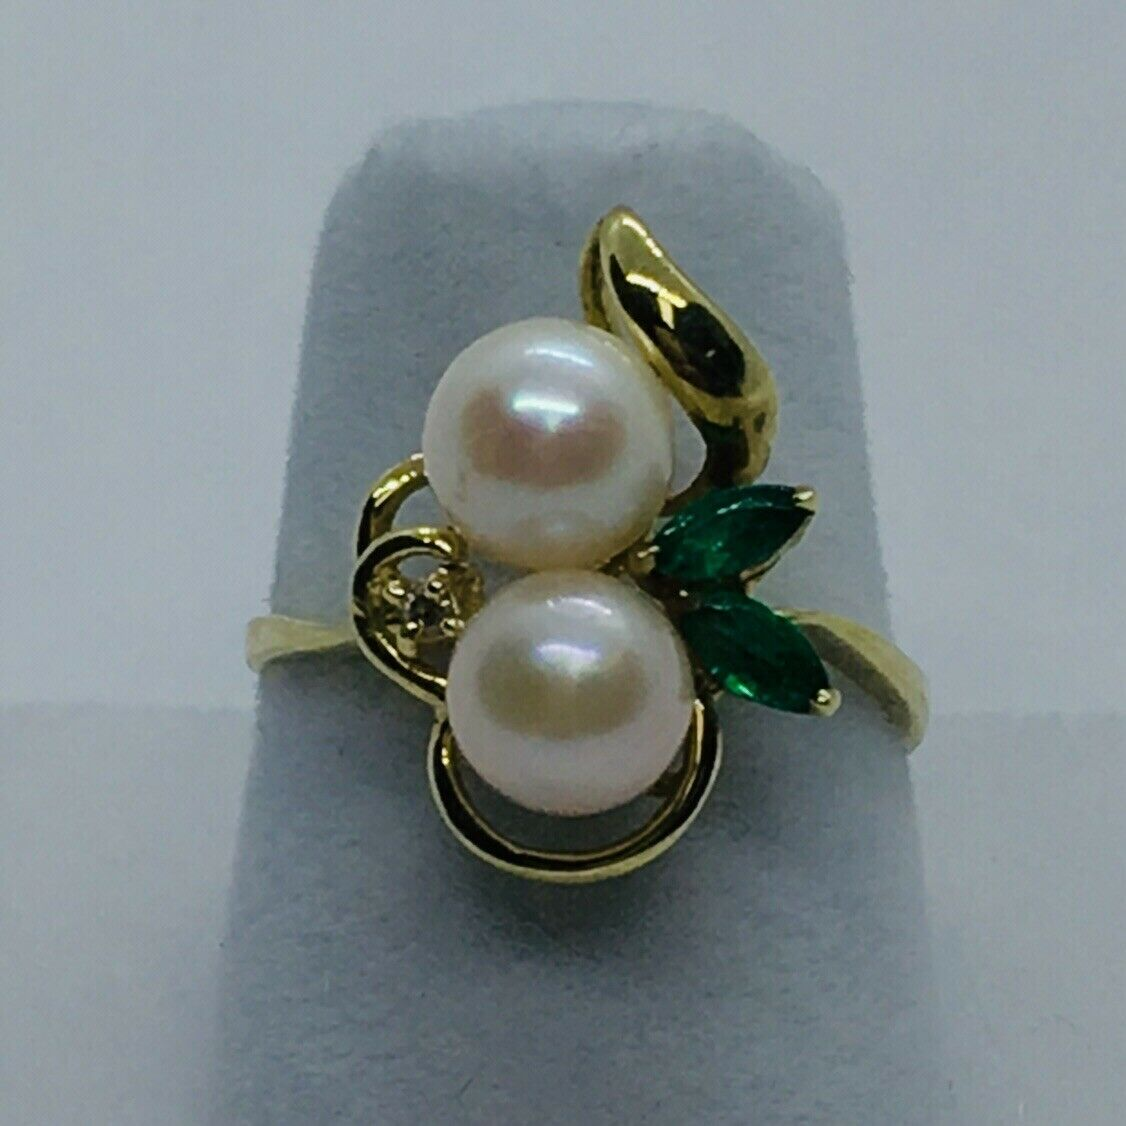 14k gold Ring With 2 6mm Pearls, 2 Marquise Emeralds And A Diamond